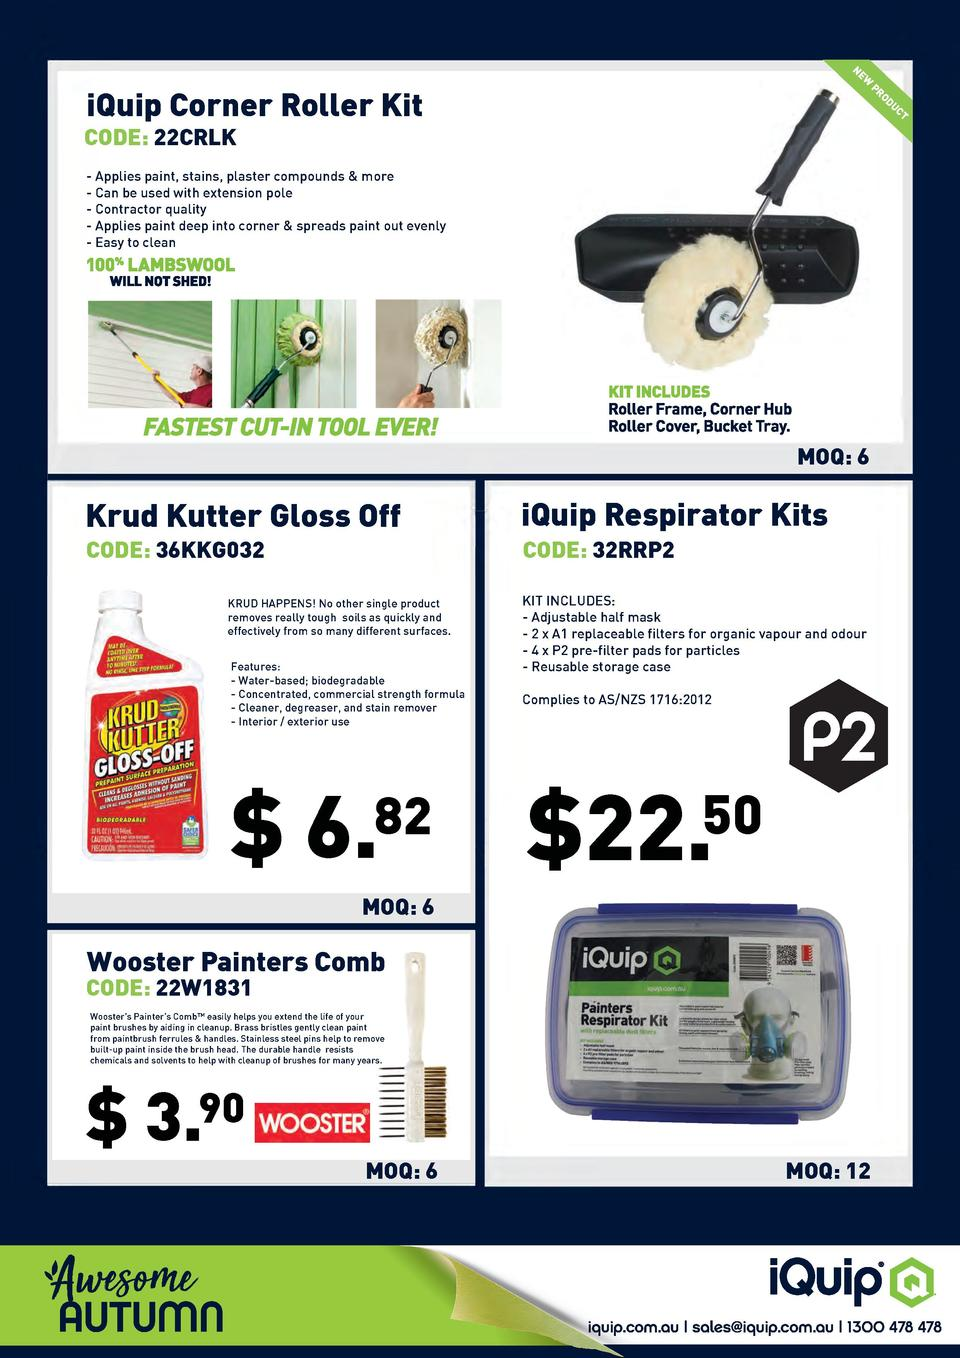 NE  W  iQuip Corner Roller Kit  PR  OD  UC  T  CODE  22CRLK  - Applies paint, stains, plaster compounds   more - Can be us...